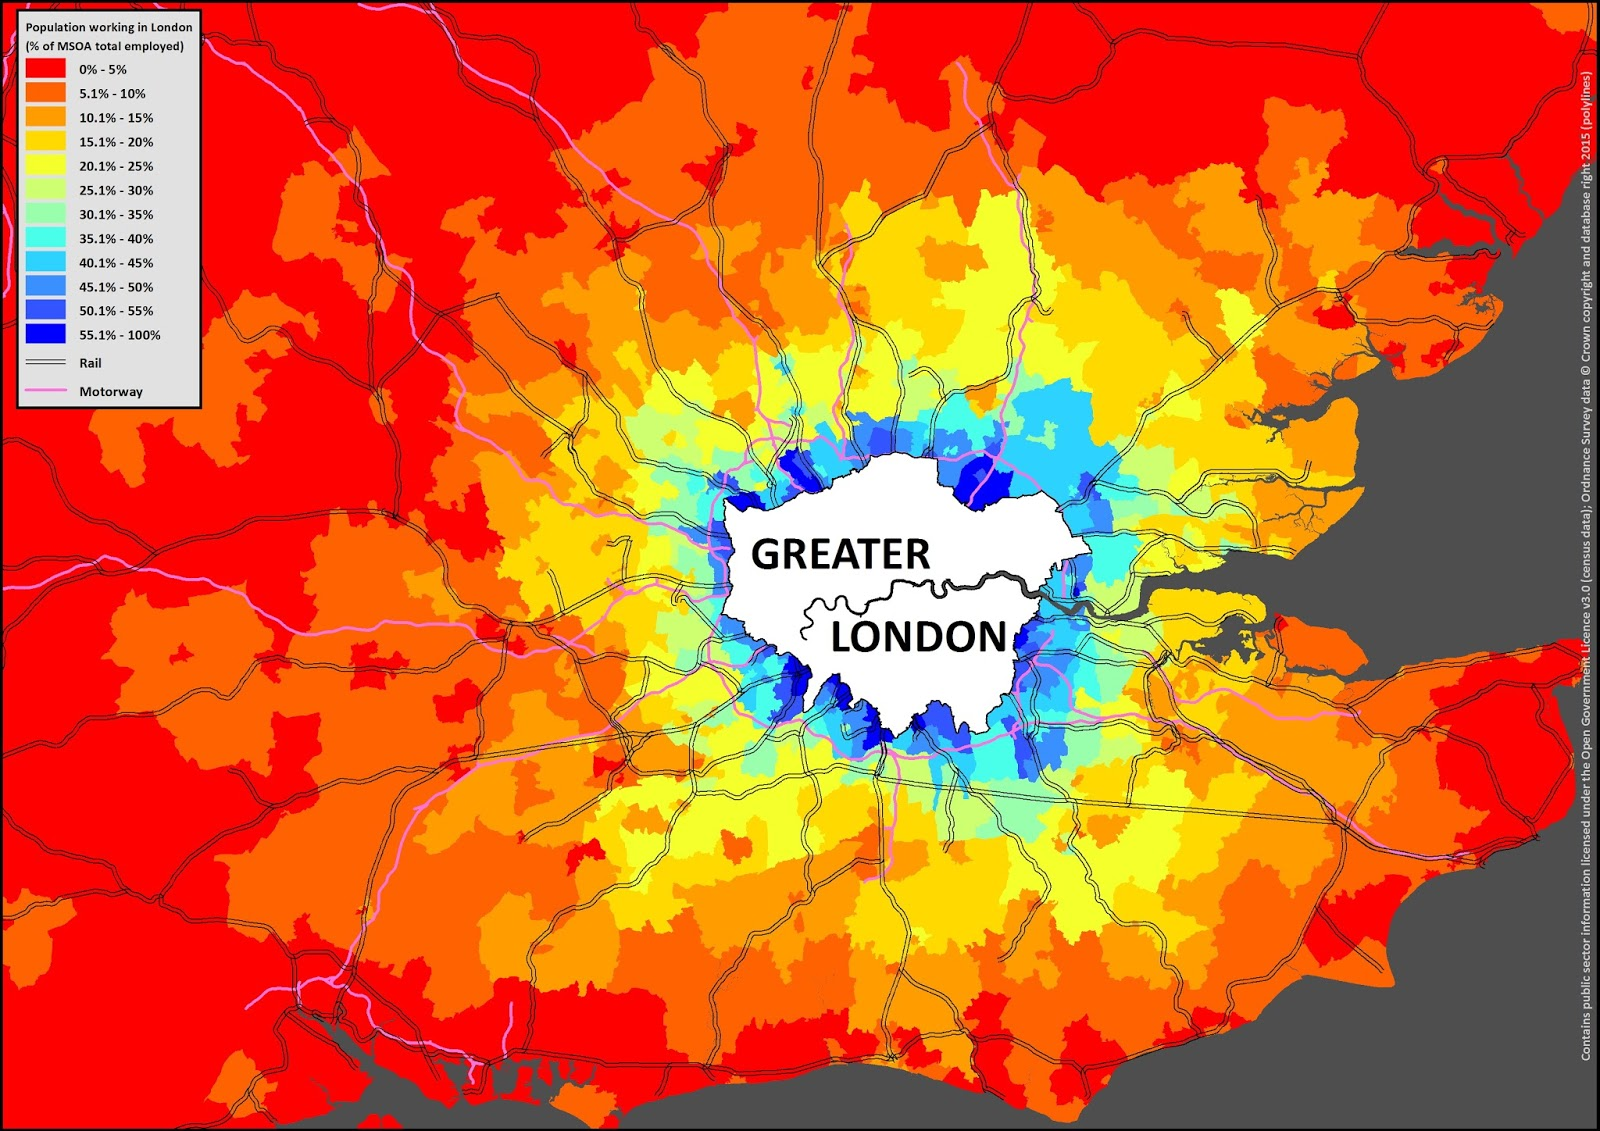 Population working in London